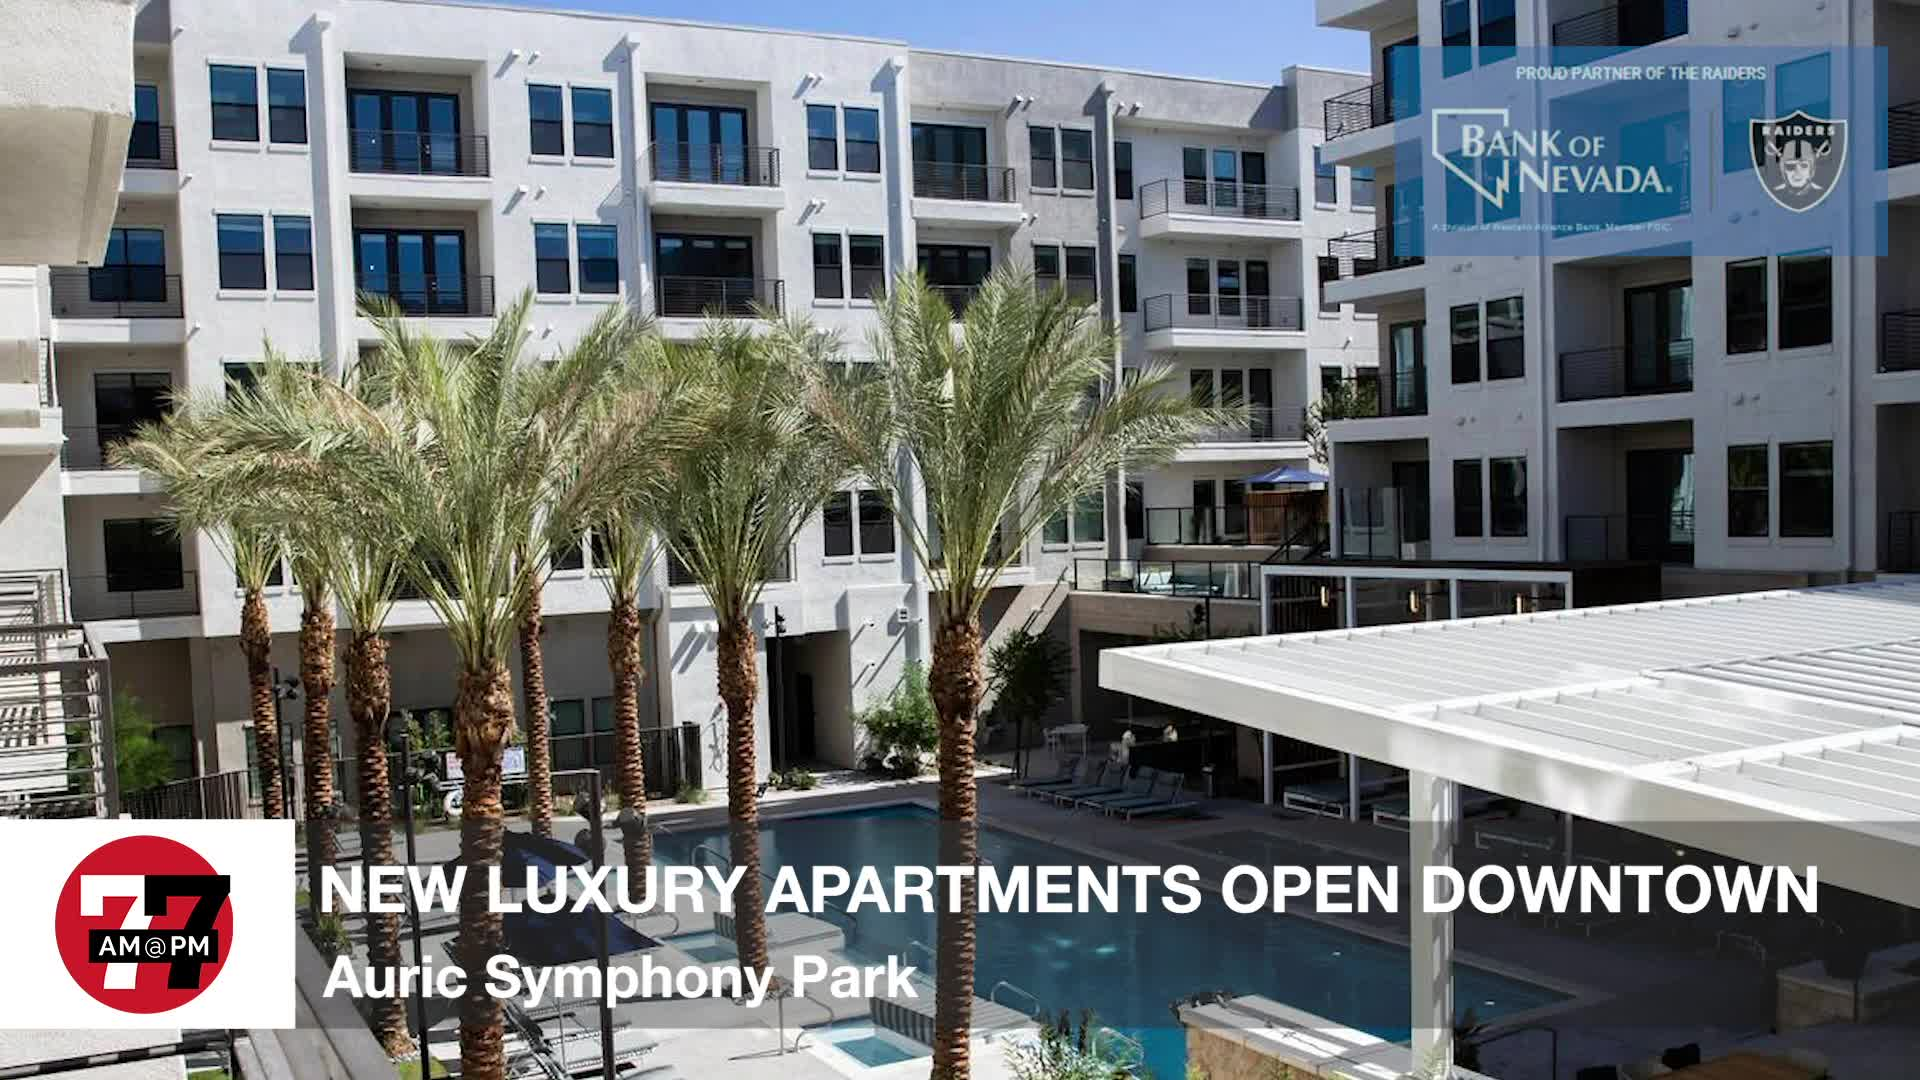 7@7PM New Luxury Apartments Open Downtown